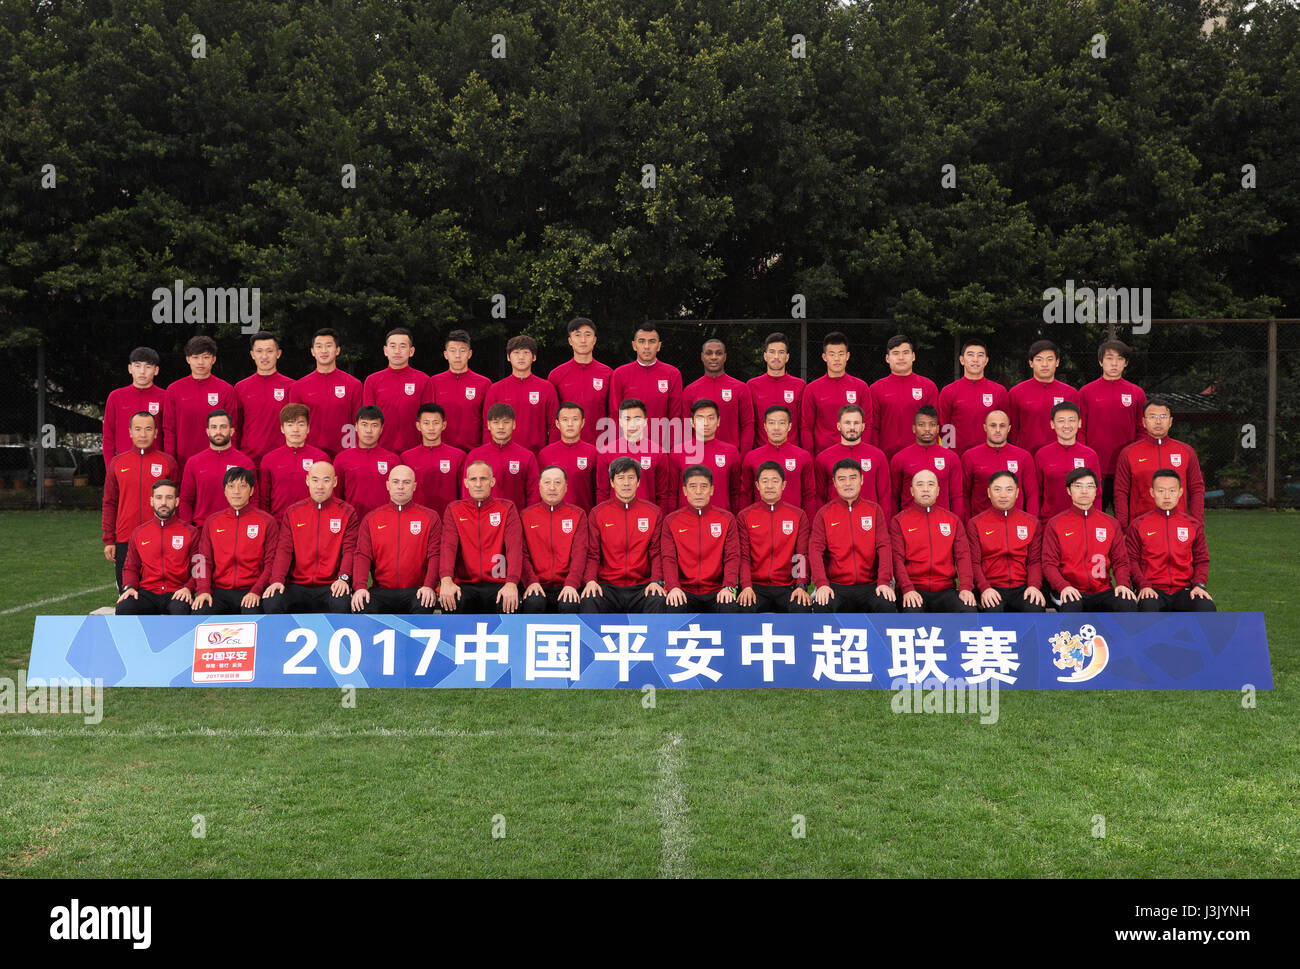 f86c93a19 Group shot of players of Changchun Yatai F.C. for the 2017 Chinese Football  Association Super League